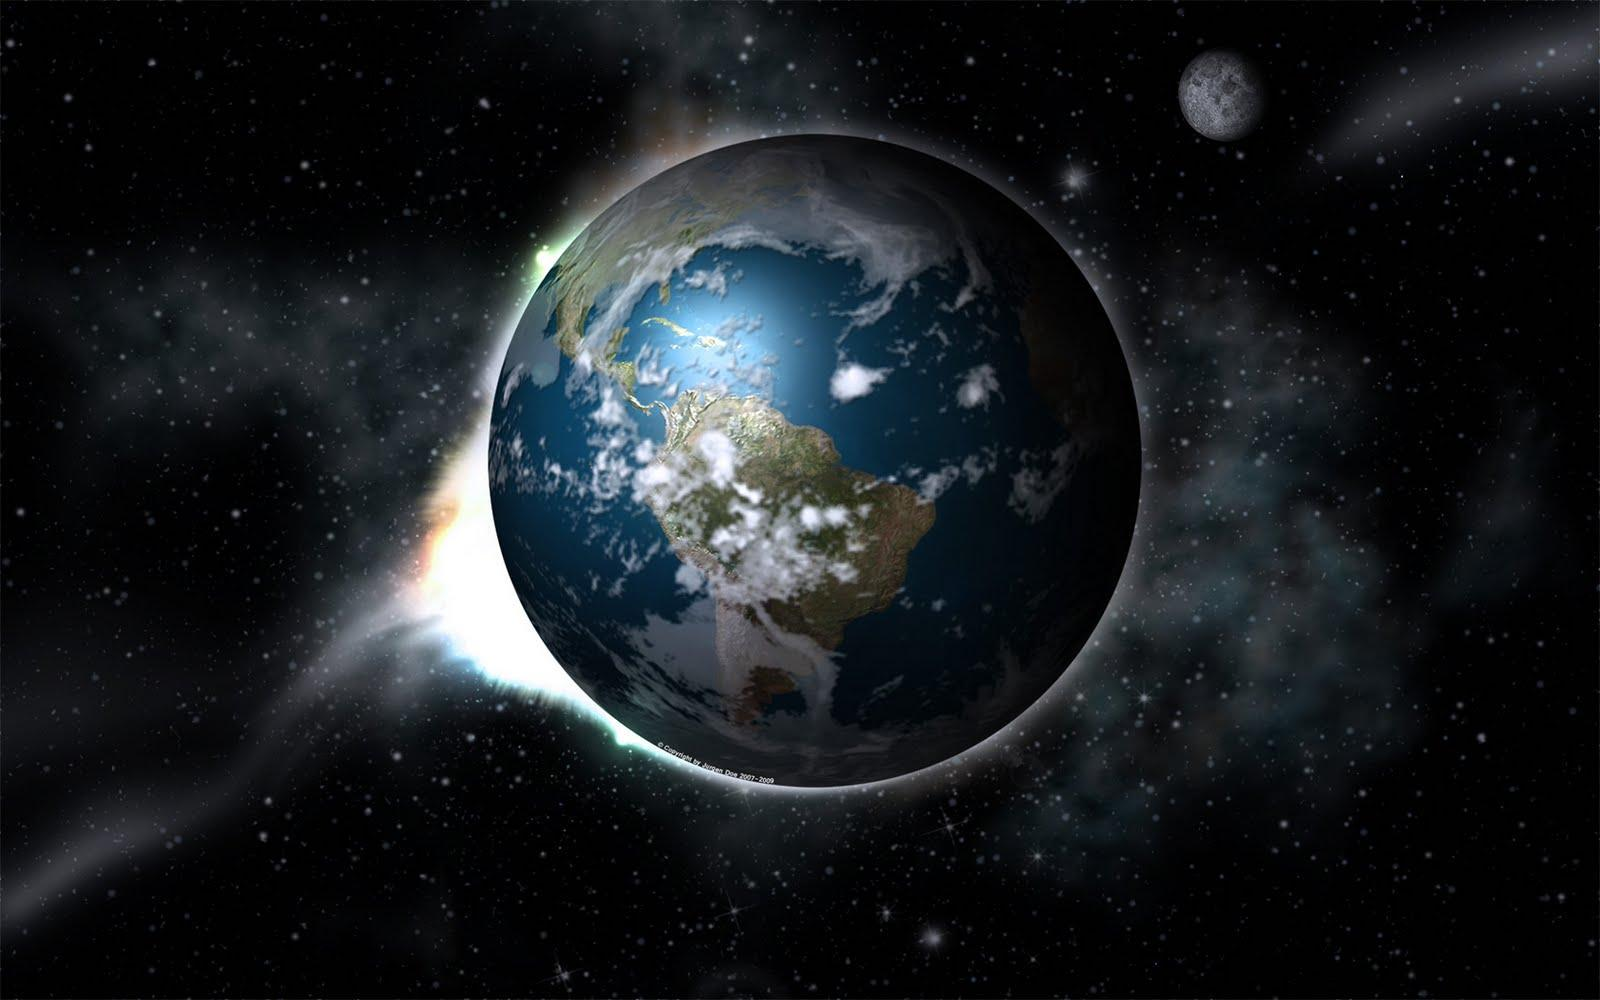 3D Earth Wallpapers 15955 Hd Wallpapers in Space - Telusers.